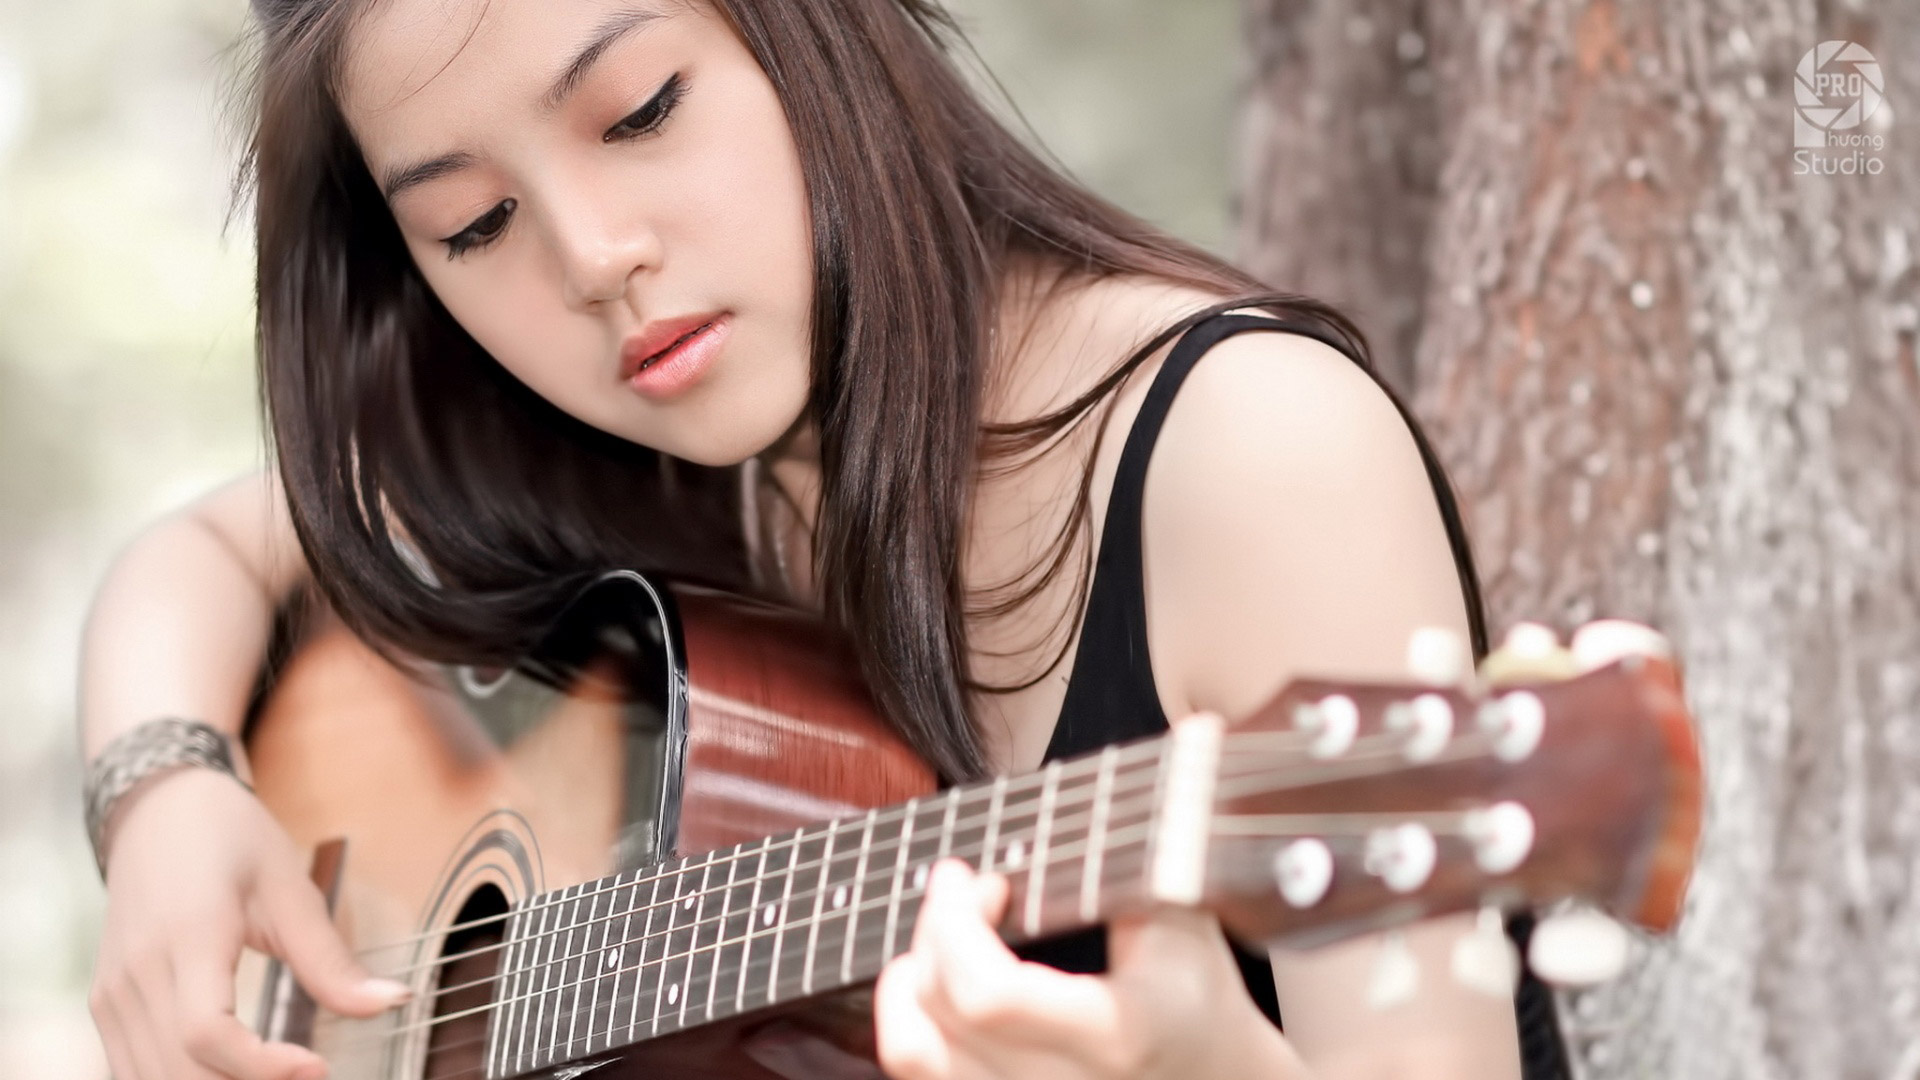 Guitar Girl Hd Wallpaper 1920x1080 Gludy